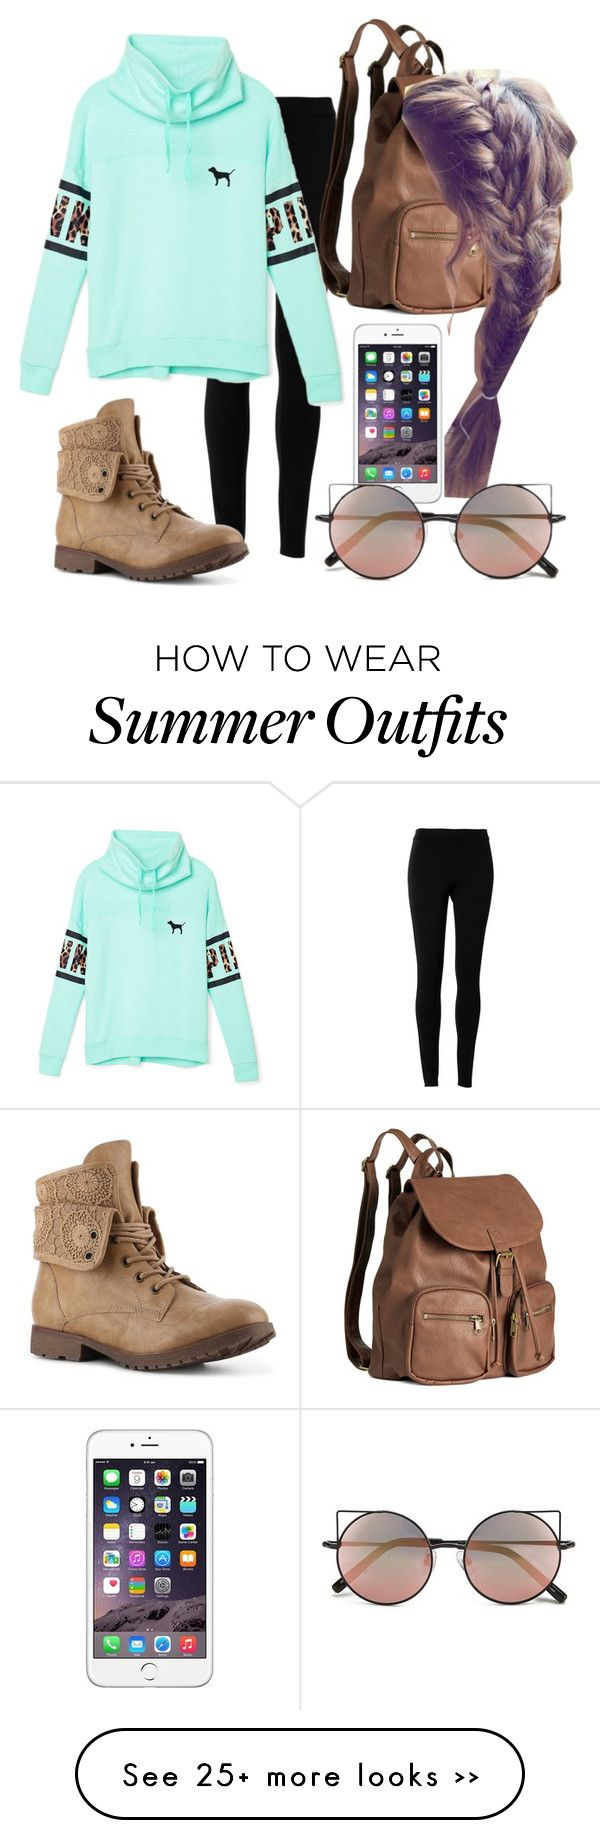 """@vintage121 outfit"" by cutieunicorn on Polyvore featuring Max Studio, Victoria's Secret PINK, H&M, Linda Farrow and vintage"